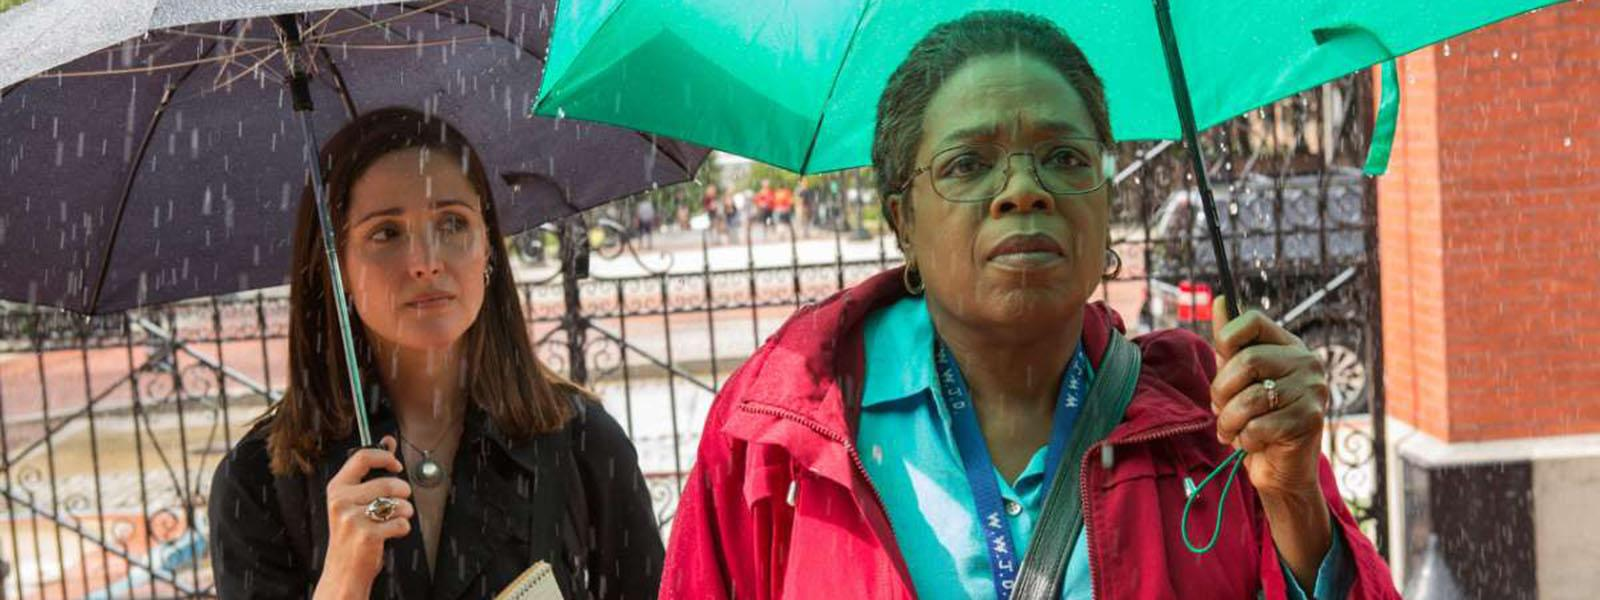 """See costume designer Paul Tazewell's work in the film """"The Immortal Life of Henrietta Lacks"""" on HBO"""